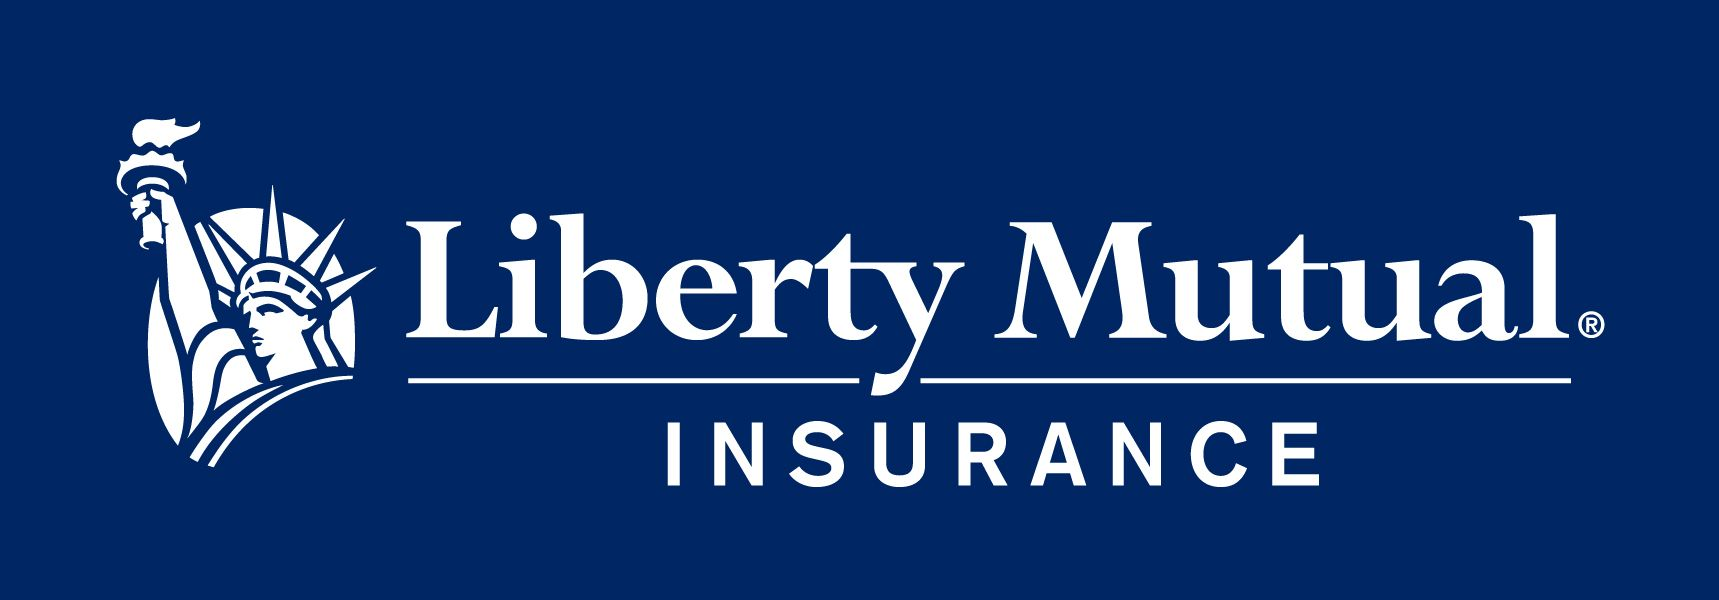 Liberty Mutual Insurance Quote Liberty Mutual Logo  Brandedlogos  Pinterest  Liberty Mutual